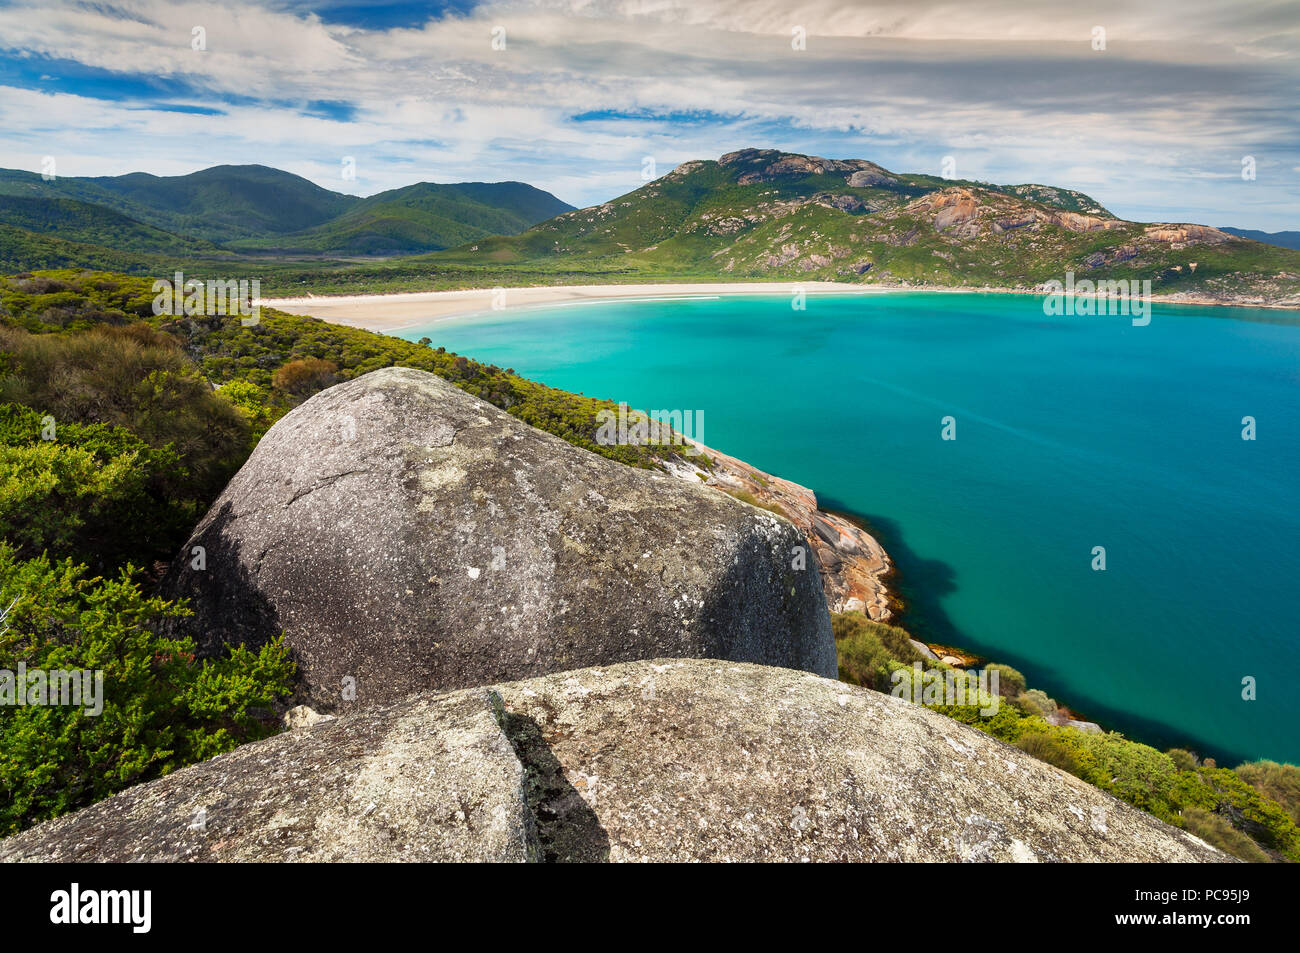 View on Norman Bay in Wilsons Promontory National Park. - Stock Image